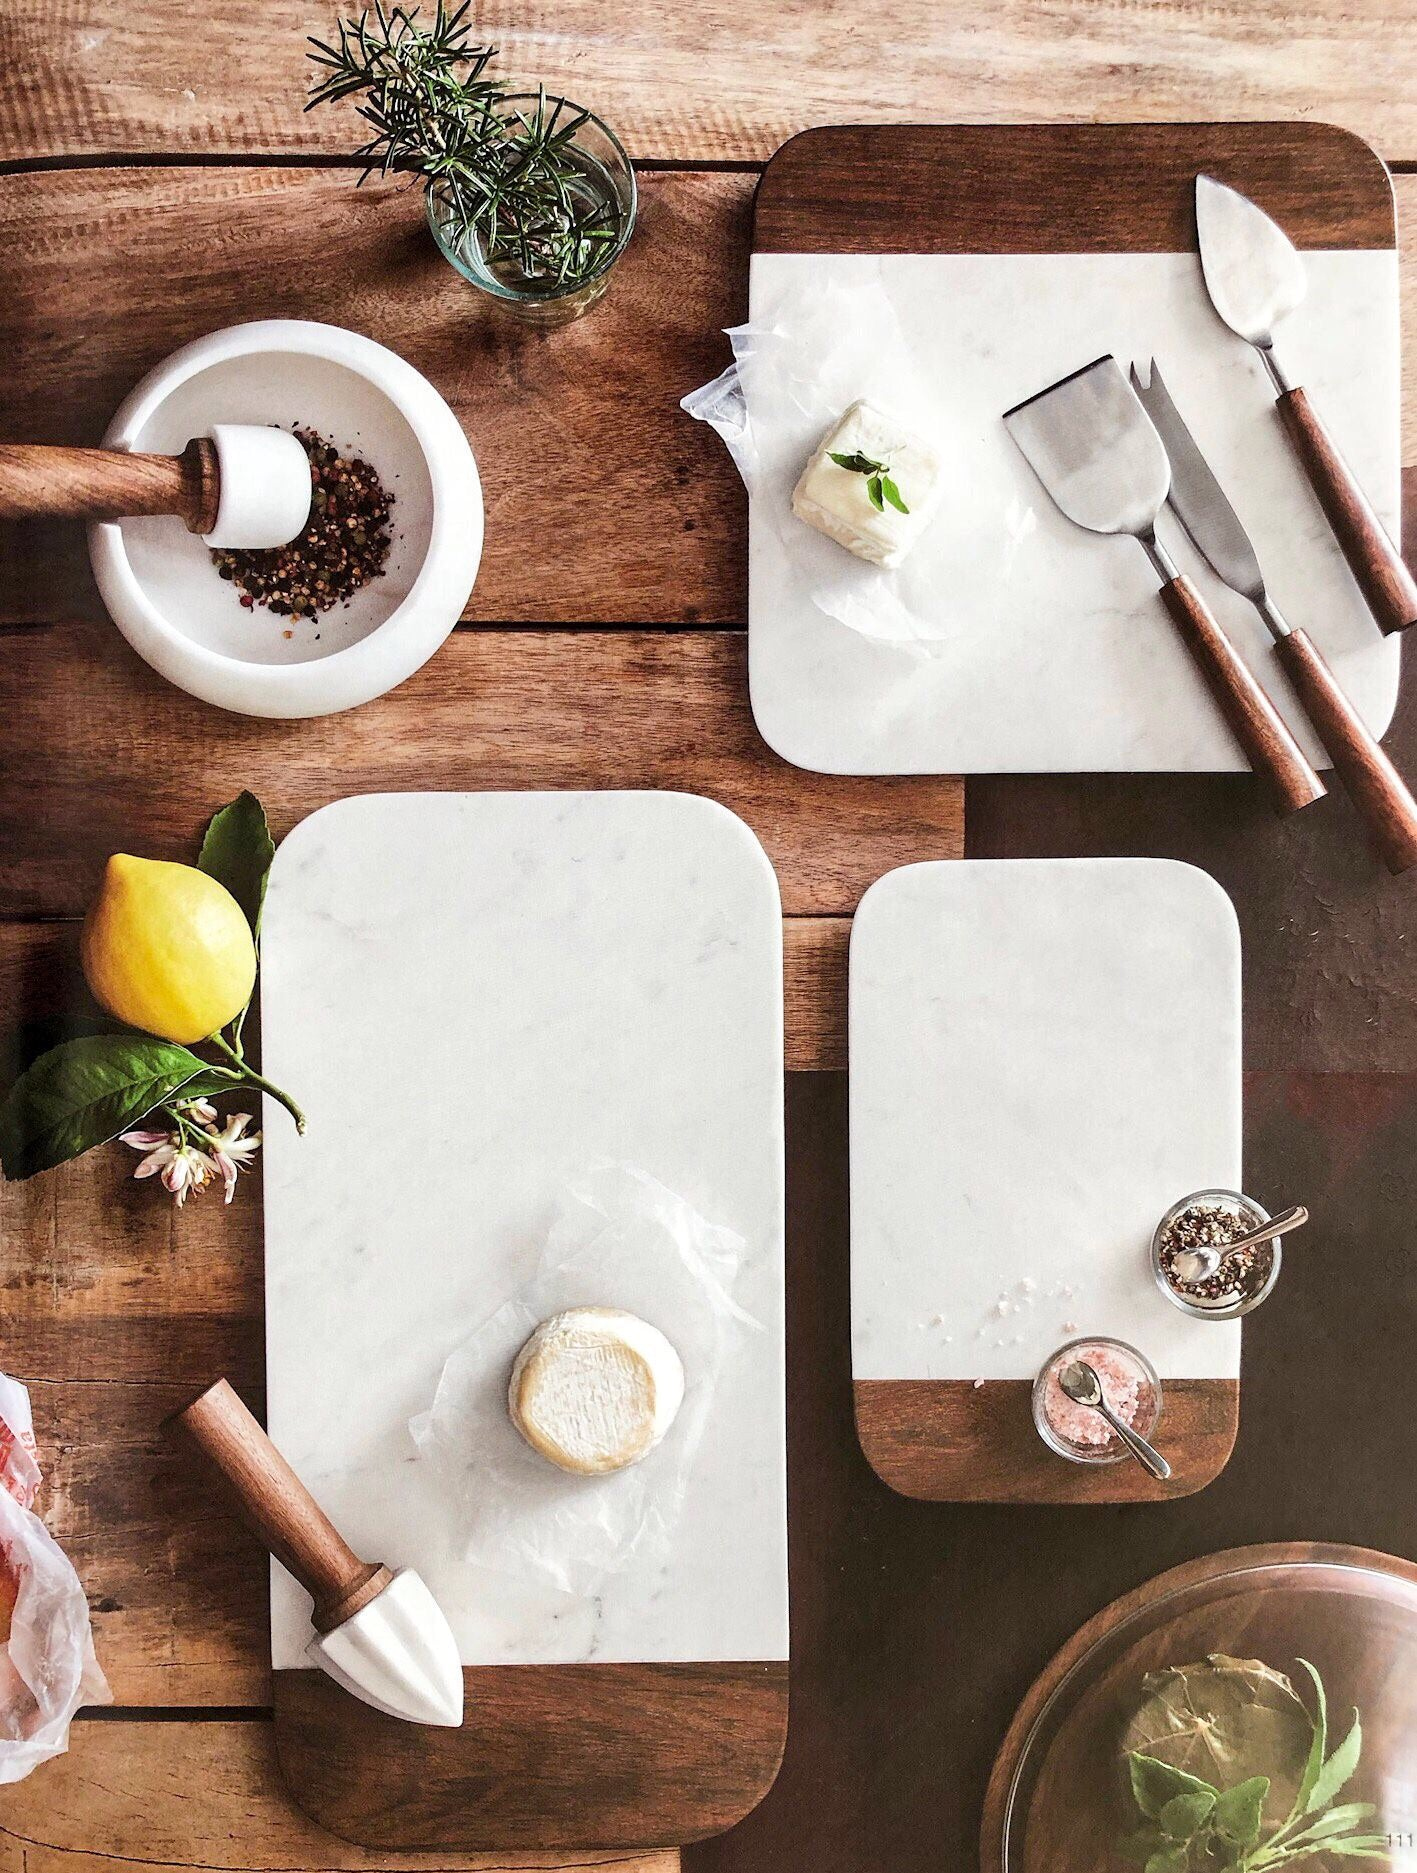 ALDO MARBLE CHEESE BOARDS